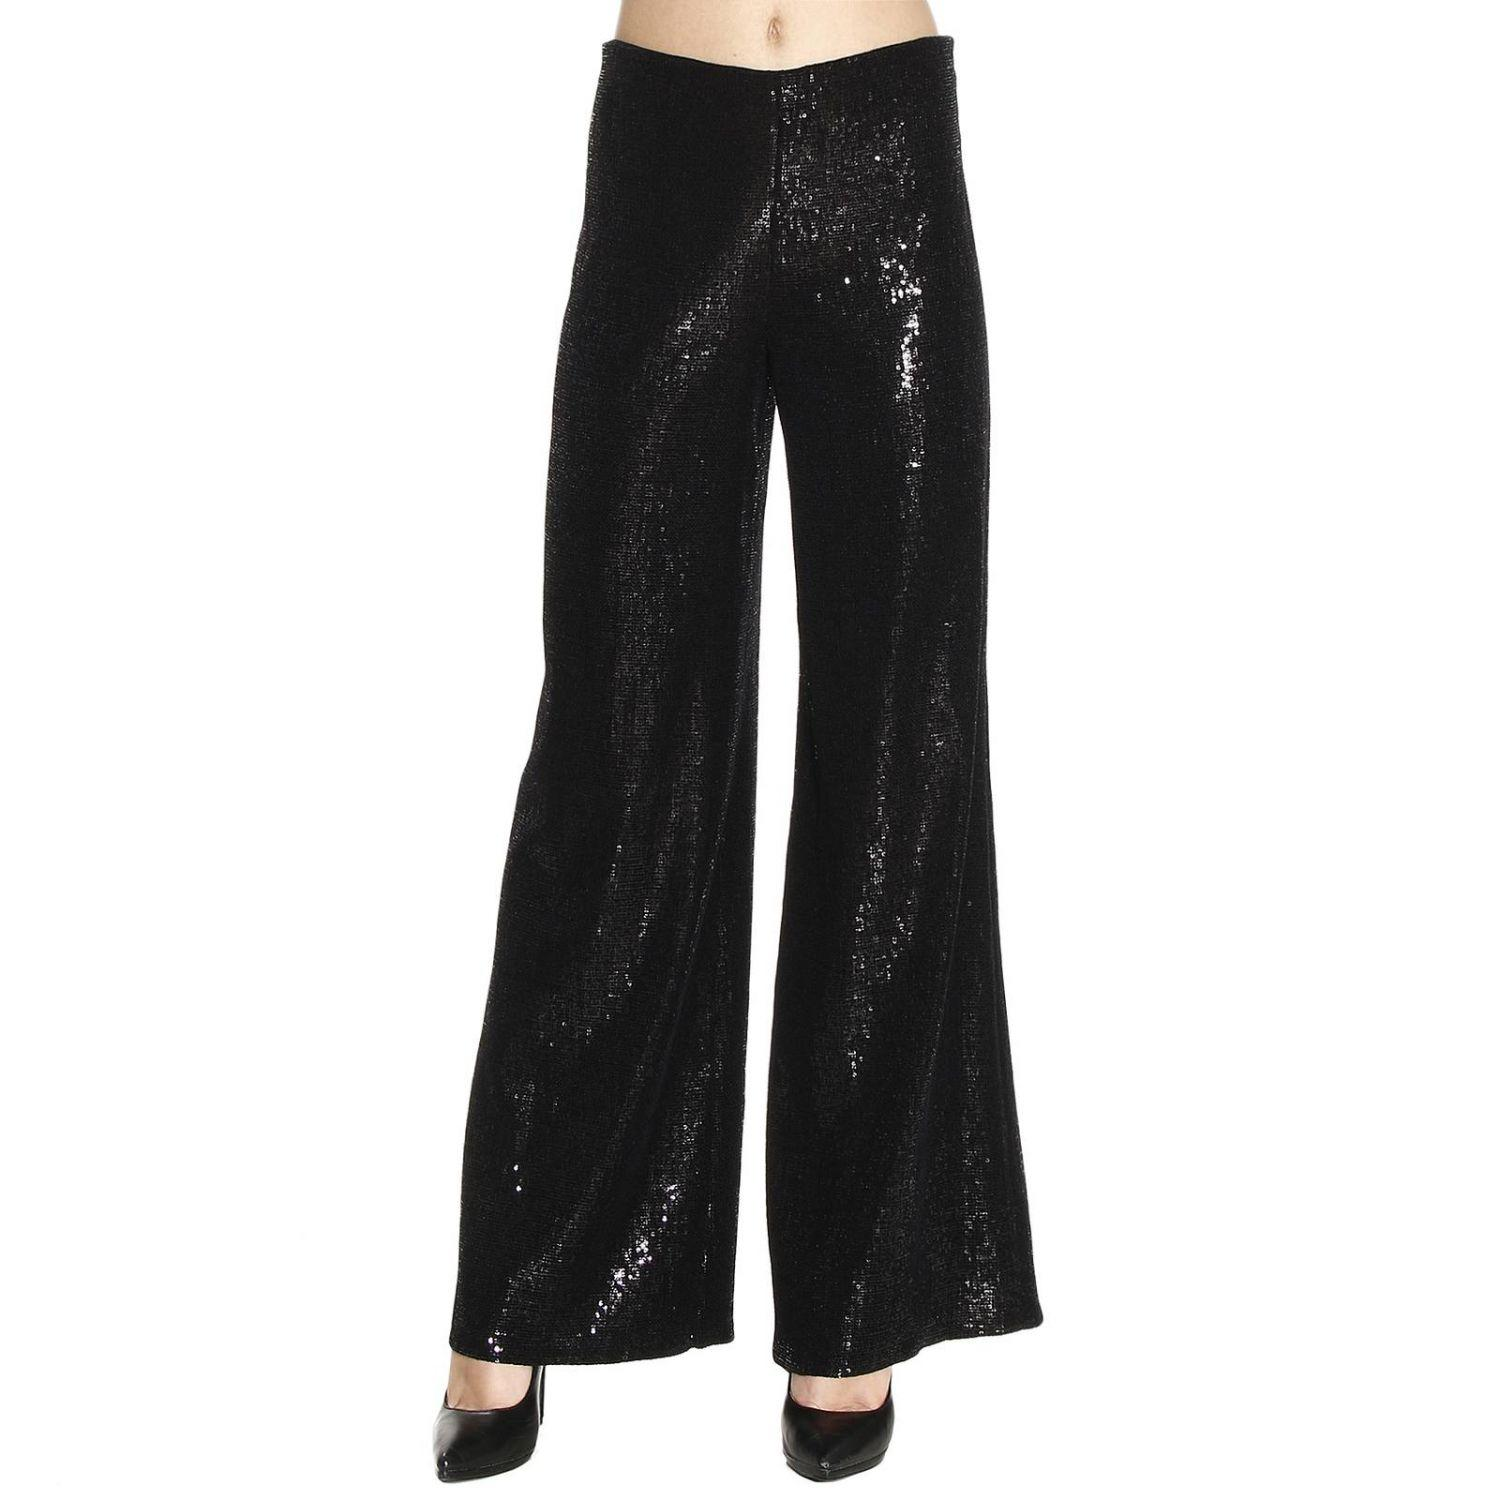 Beautiful The Wide Leg Palazzo Is The Perfect Trouser  With A Sheer Black Blouse Also By Vineyard Vines With Just A Touch Of Sparkle To Add A Little Bit Of Glam Without Taking Away From The Focus Of The Pants I Also Love This Look Because, Women